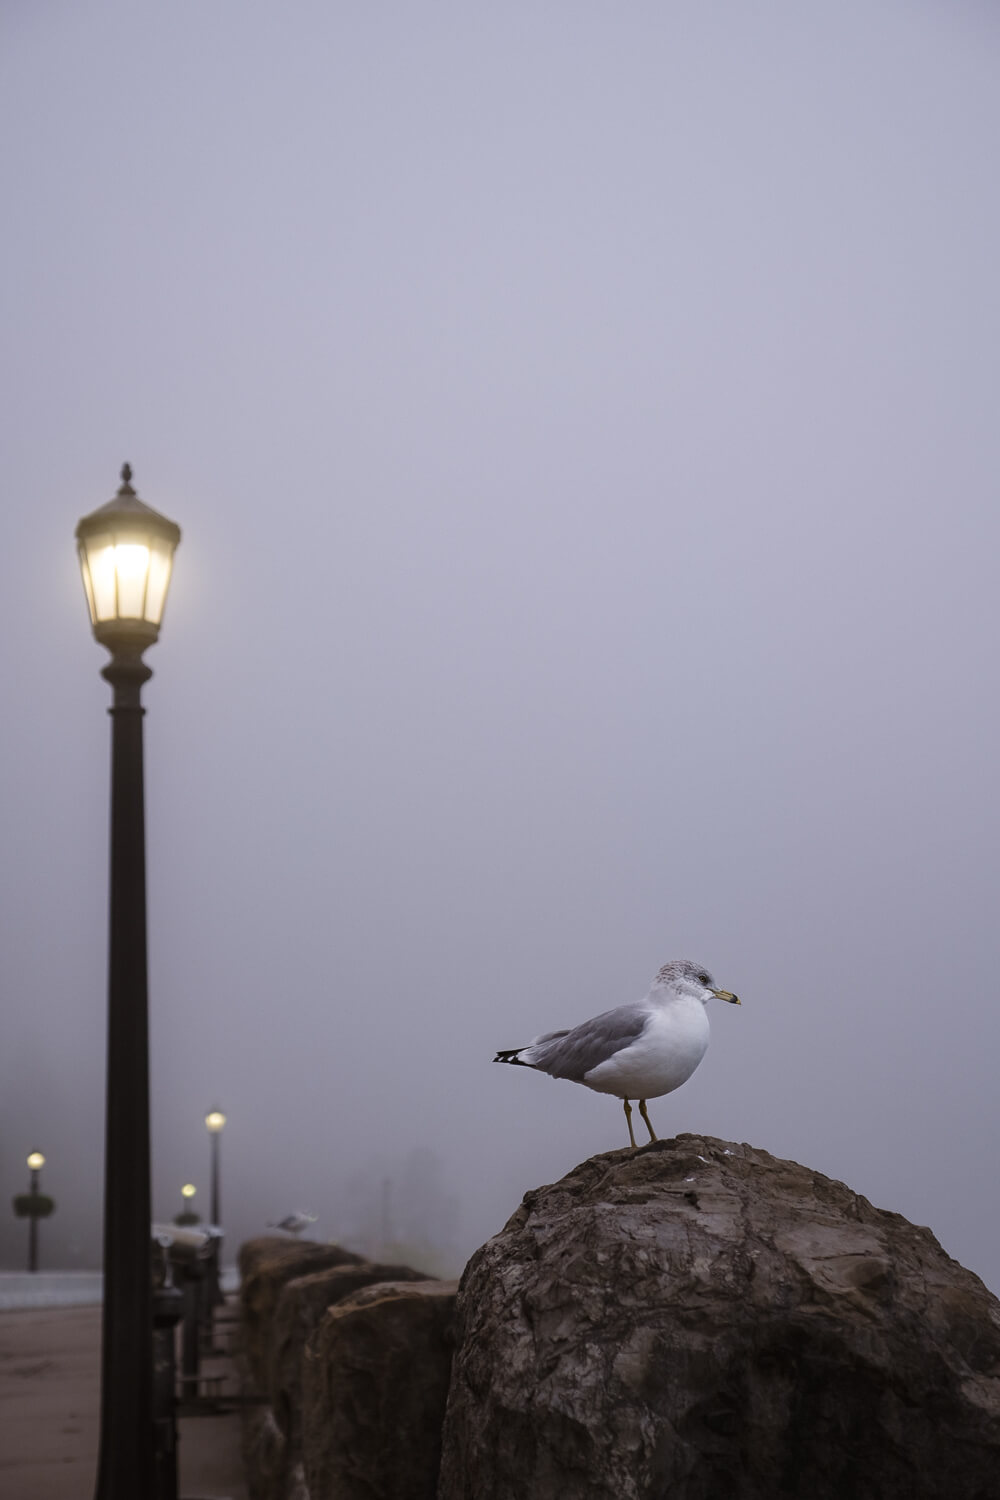 A seagull in the early morning